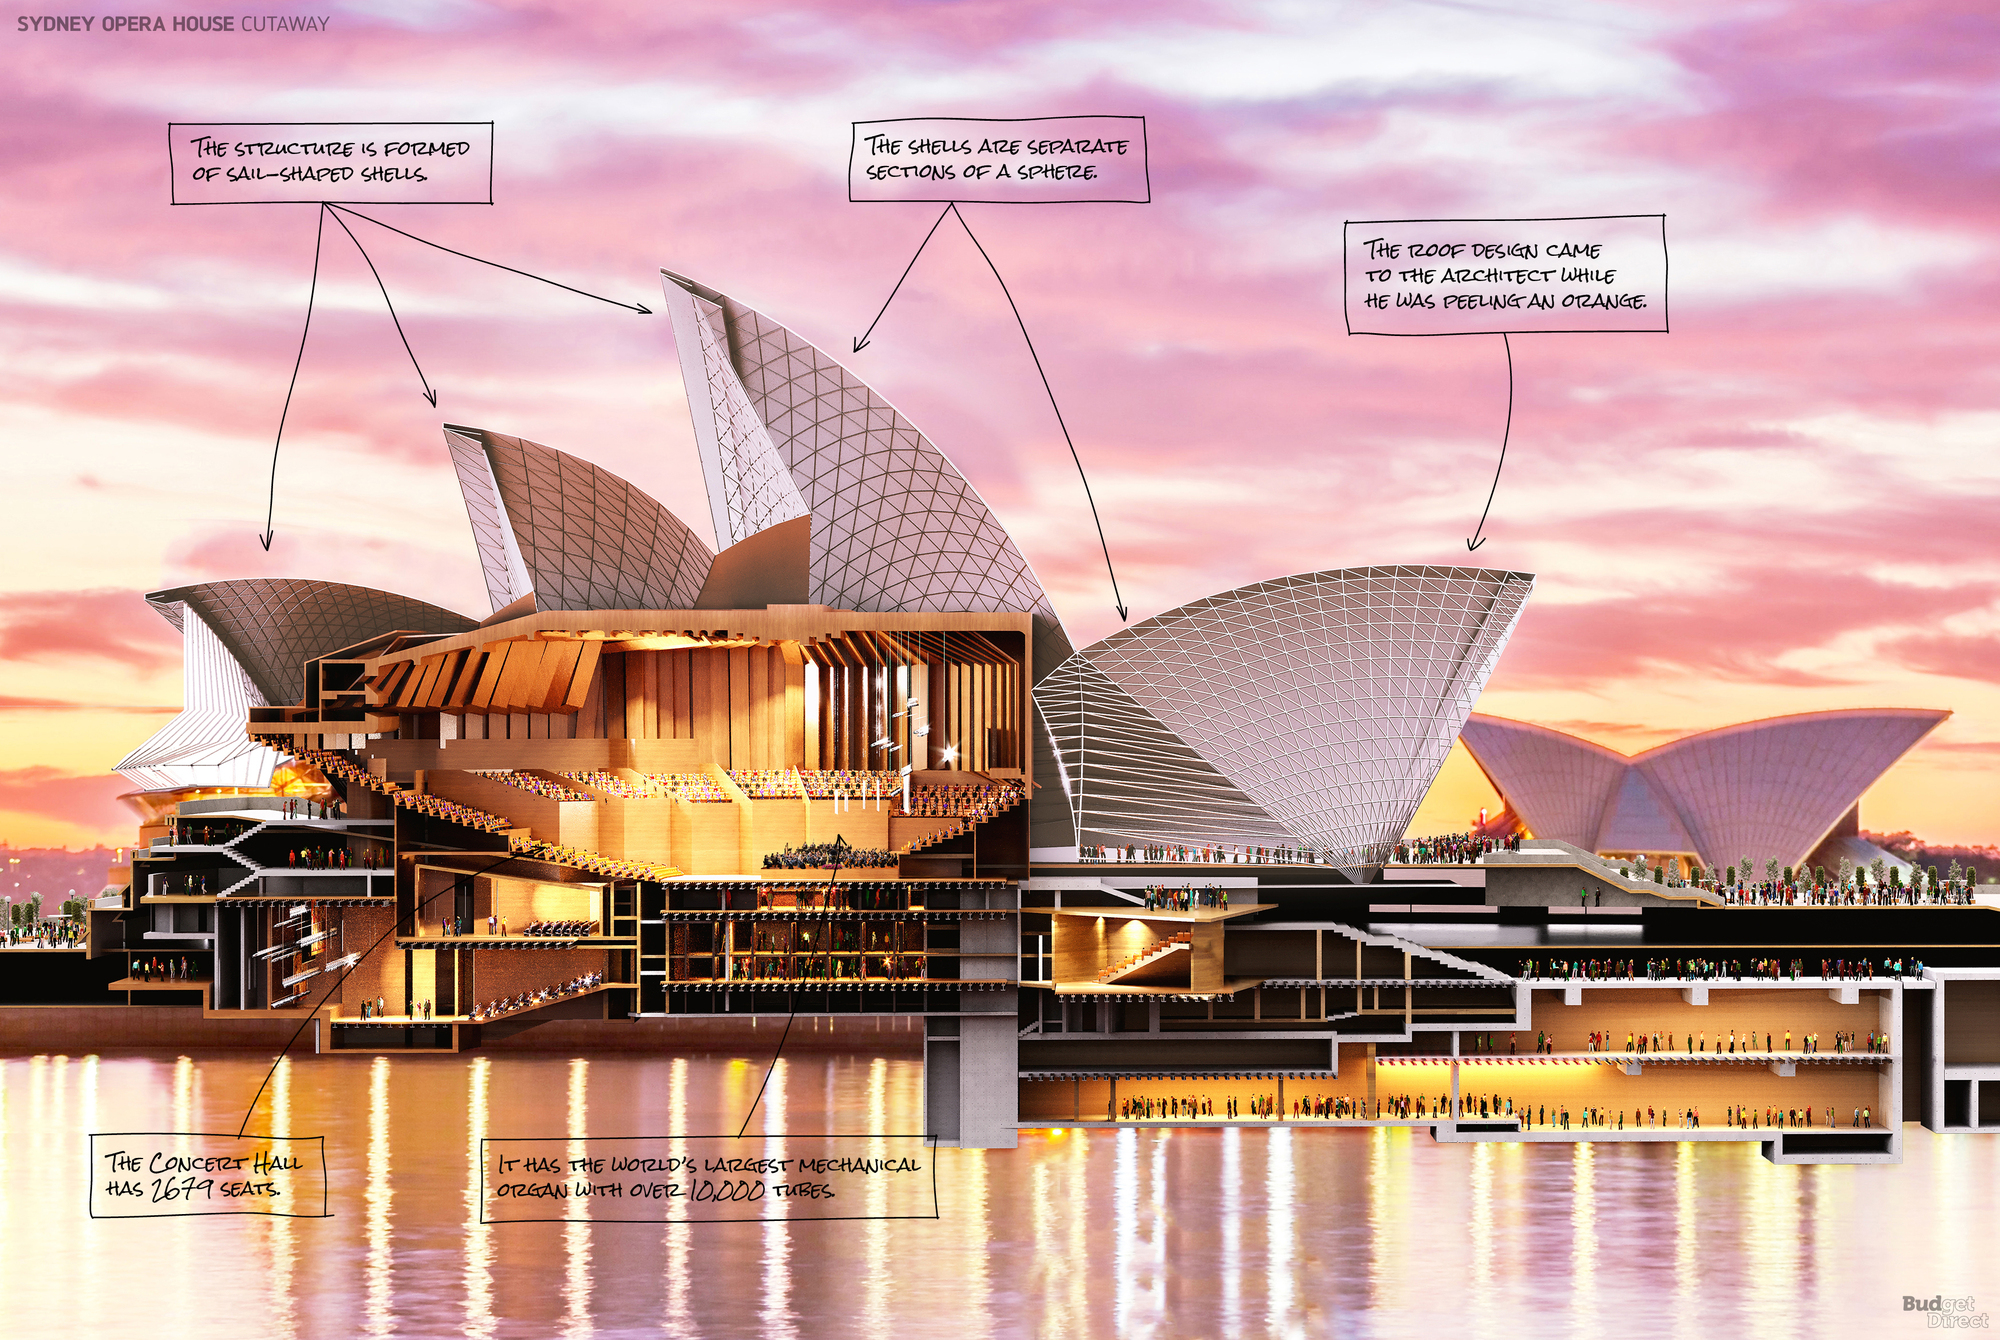 Australia's Famous Monuments Revealed in a Series of Cross-Sections